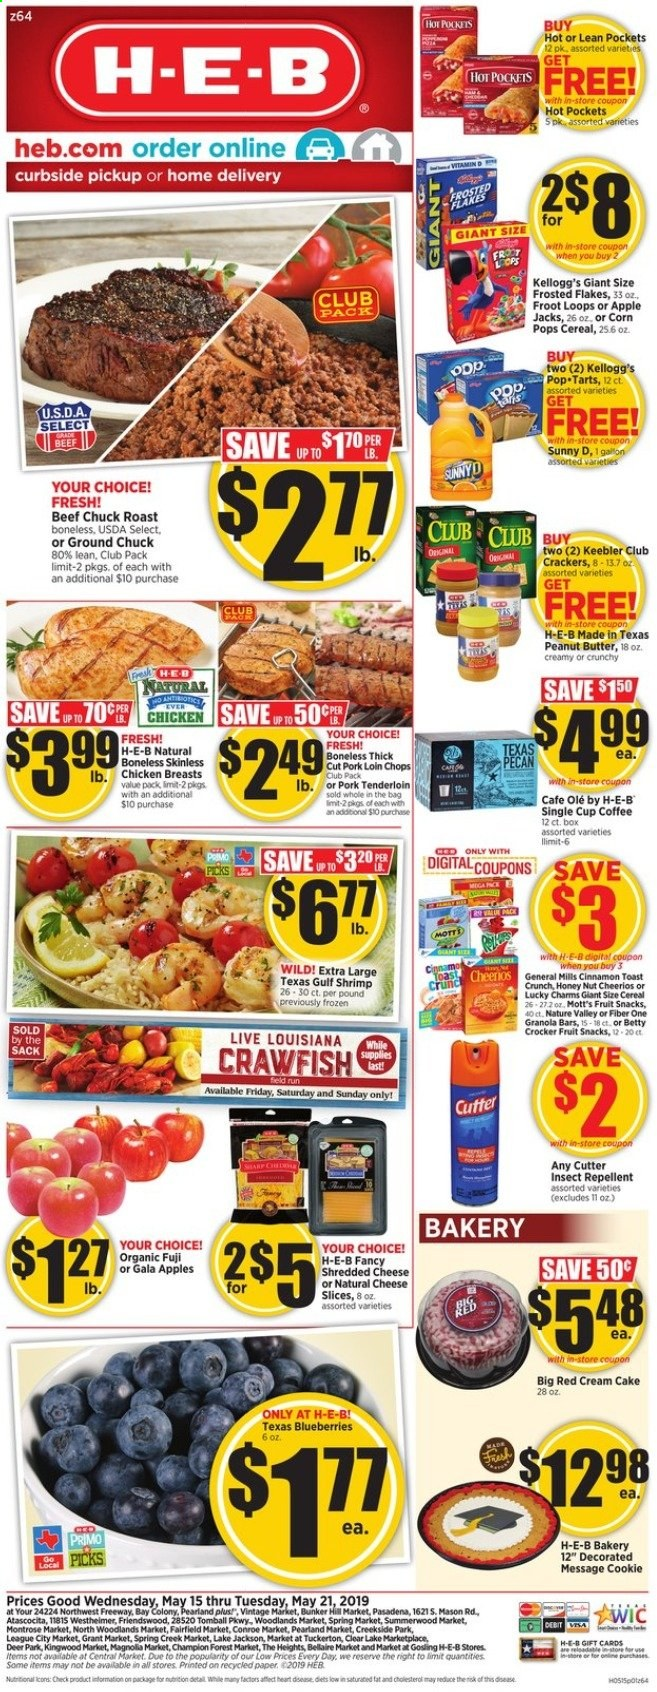 H-E-B Flyer  - 05.15.2019 - 05.21.2019. Page 1.